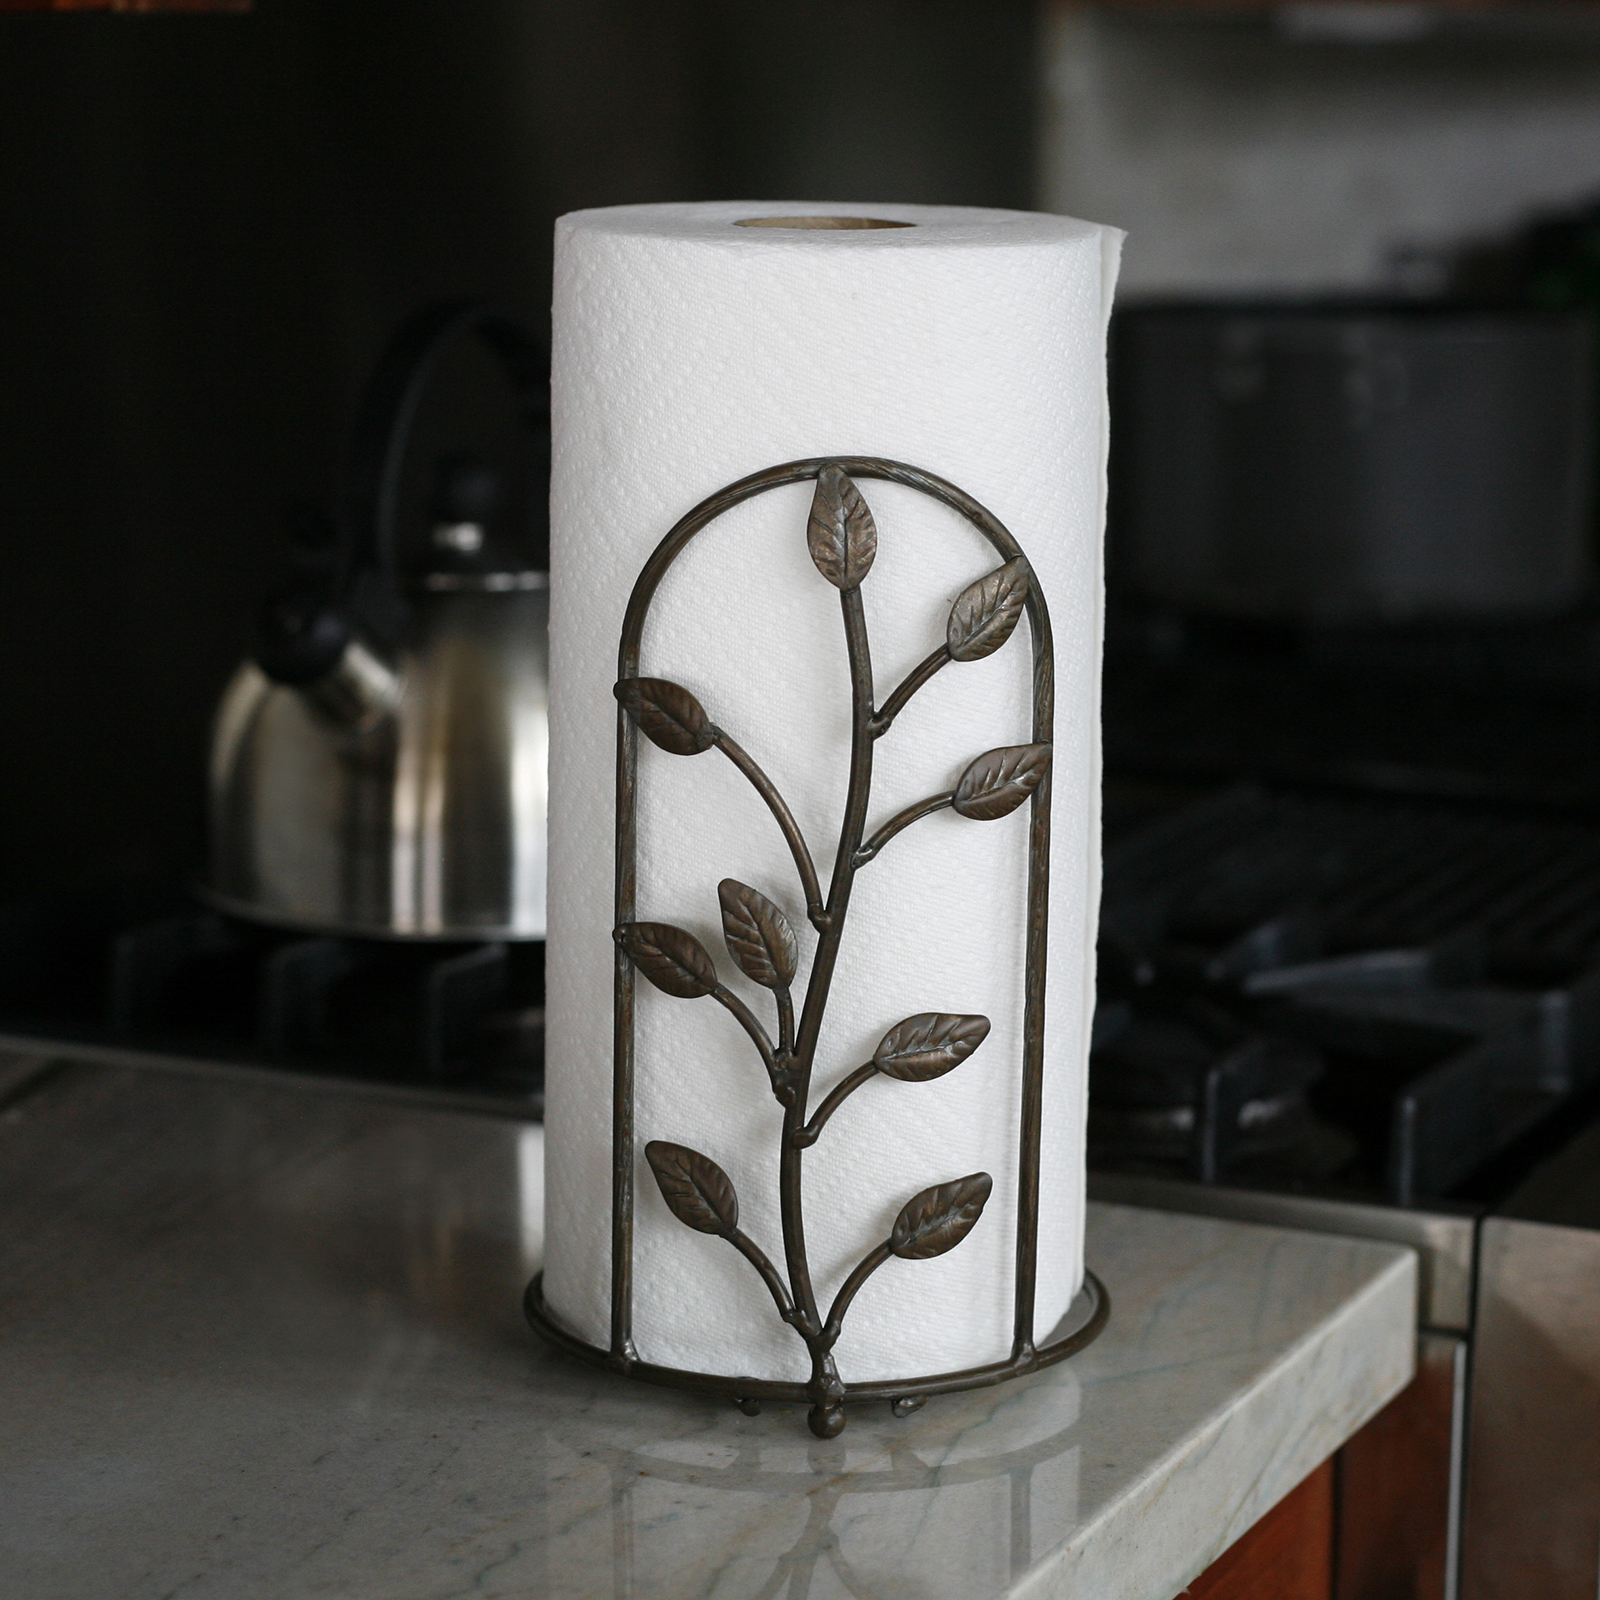 Paper Towel Holder Kmart Mesa International Sweet Leaf Collection Paper Towel